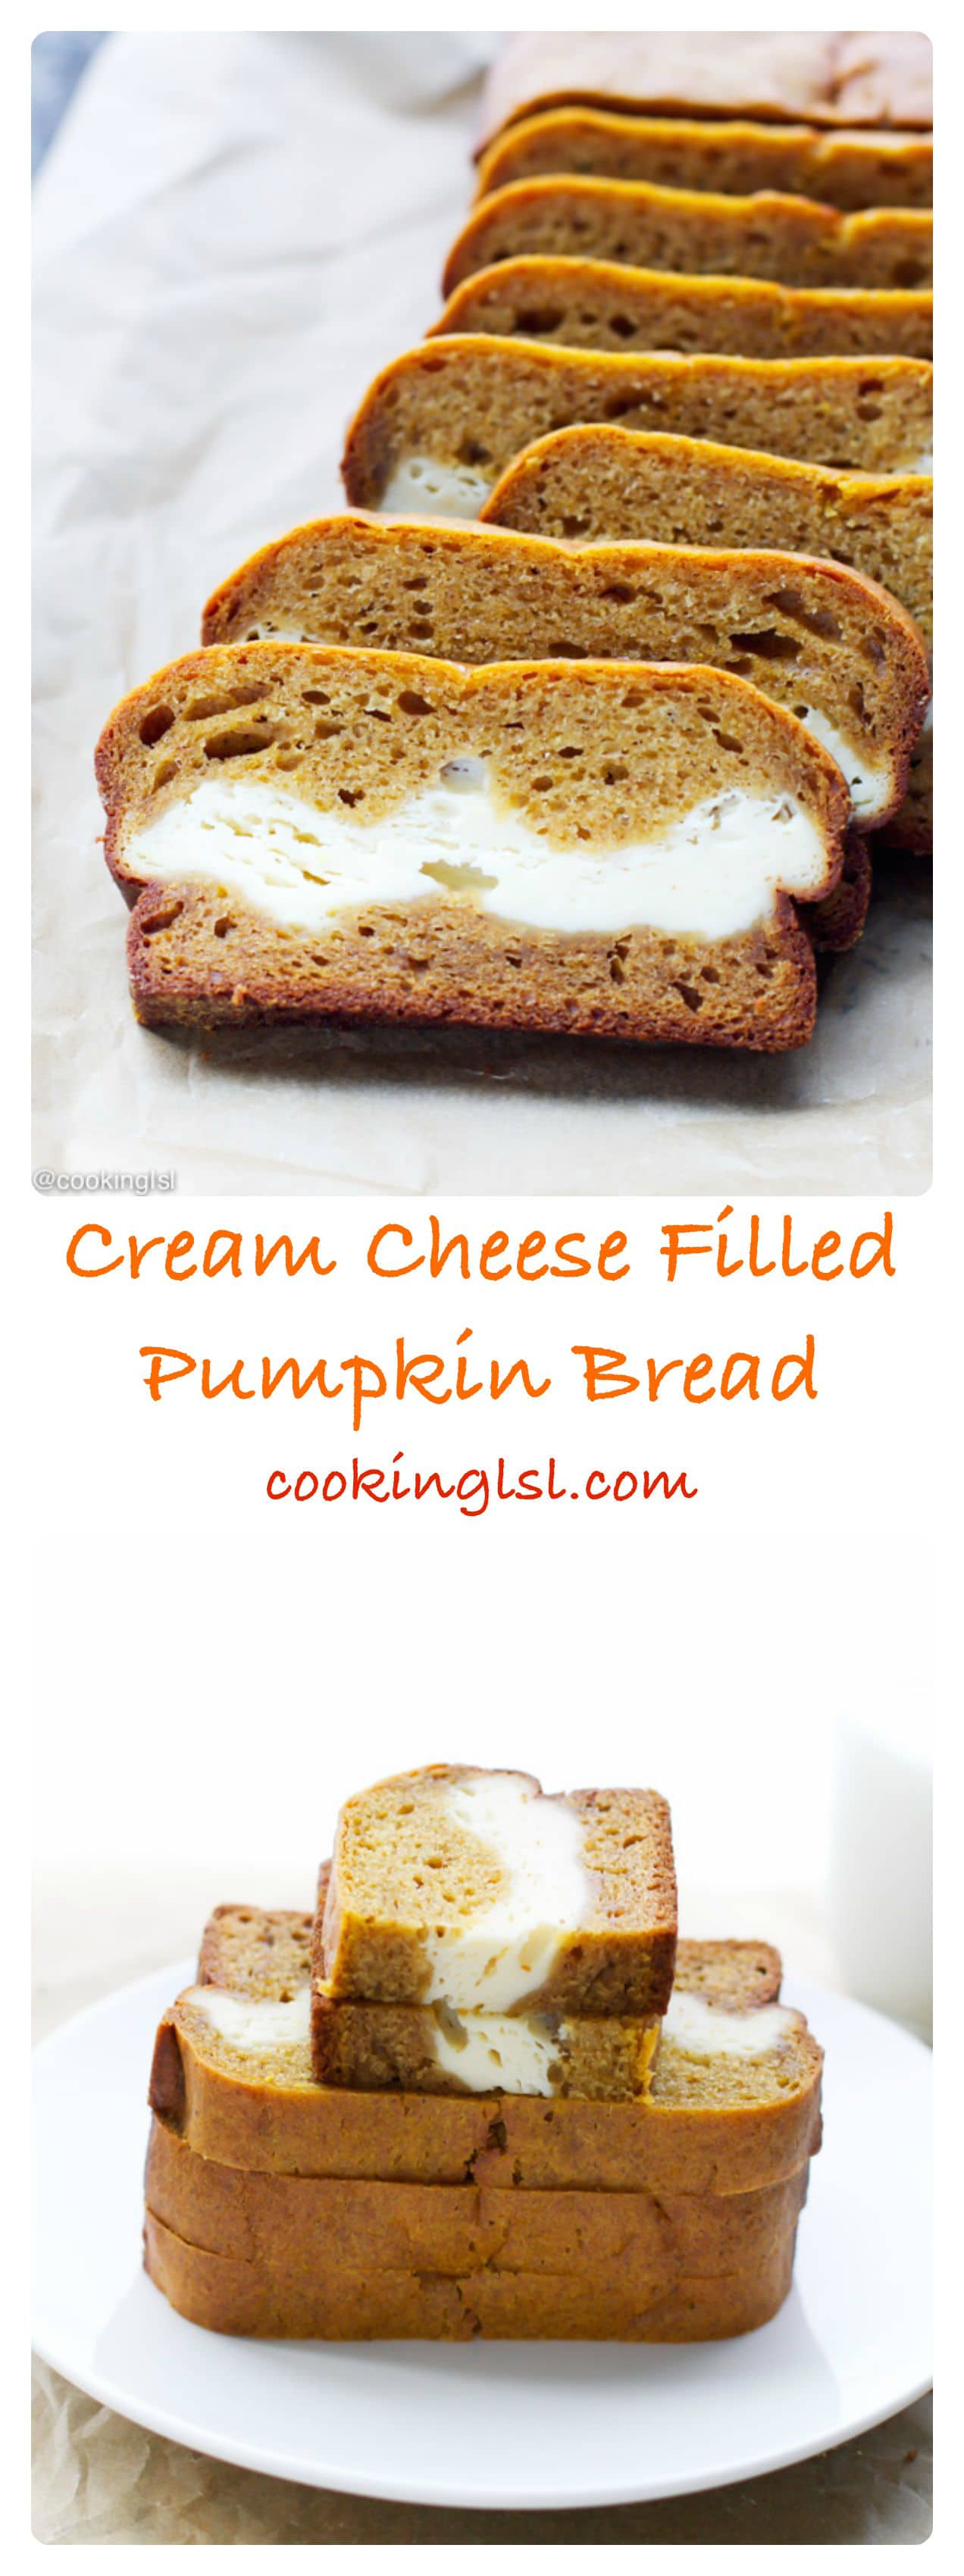 cream-cheese-filled-pumpkin-bread-recipe